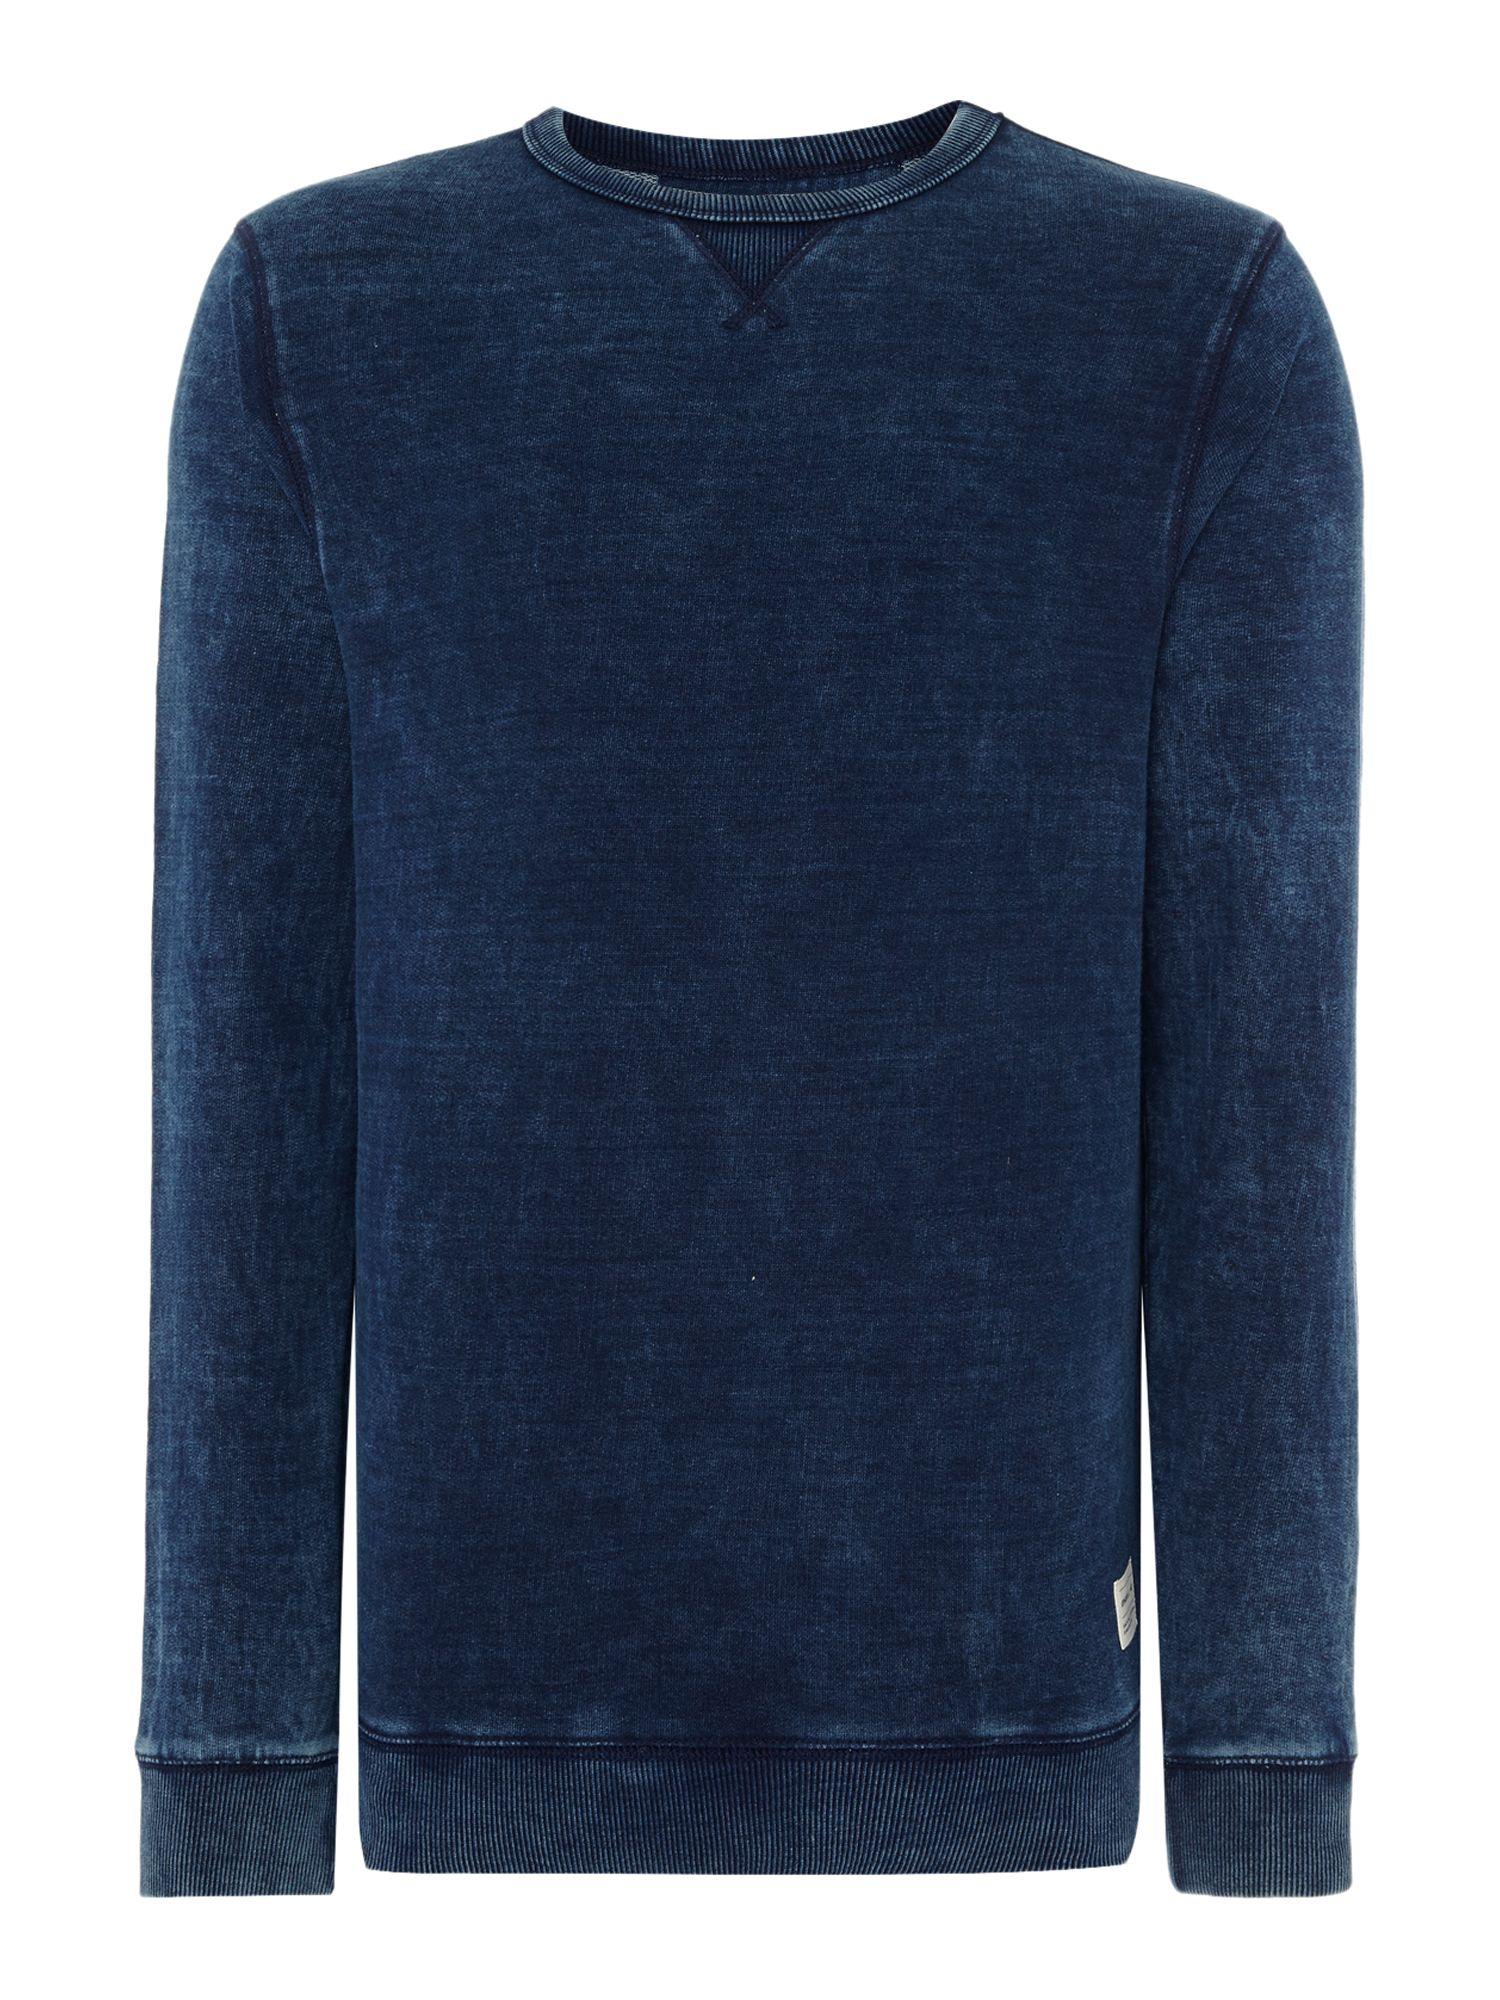 Men's O'Neill Baker sweatshirt, Blue